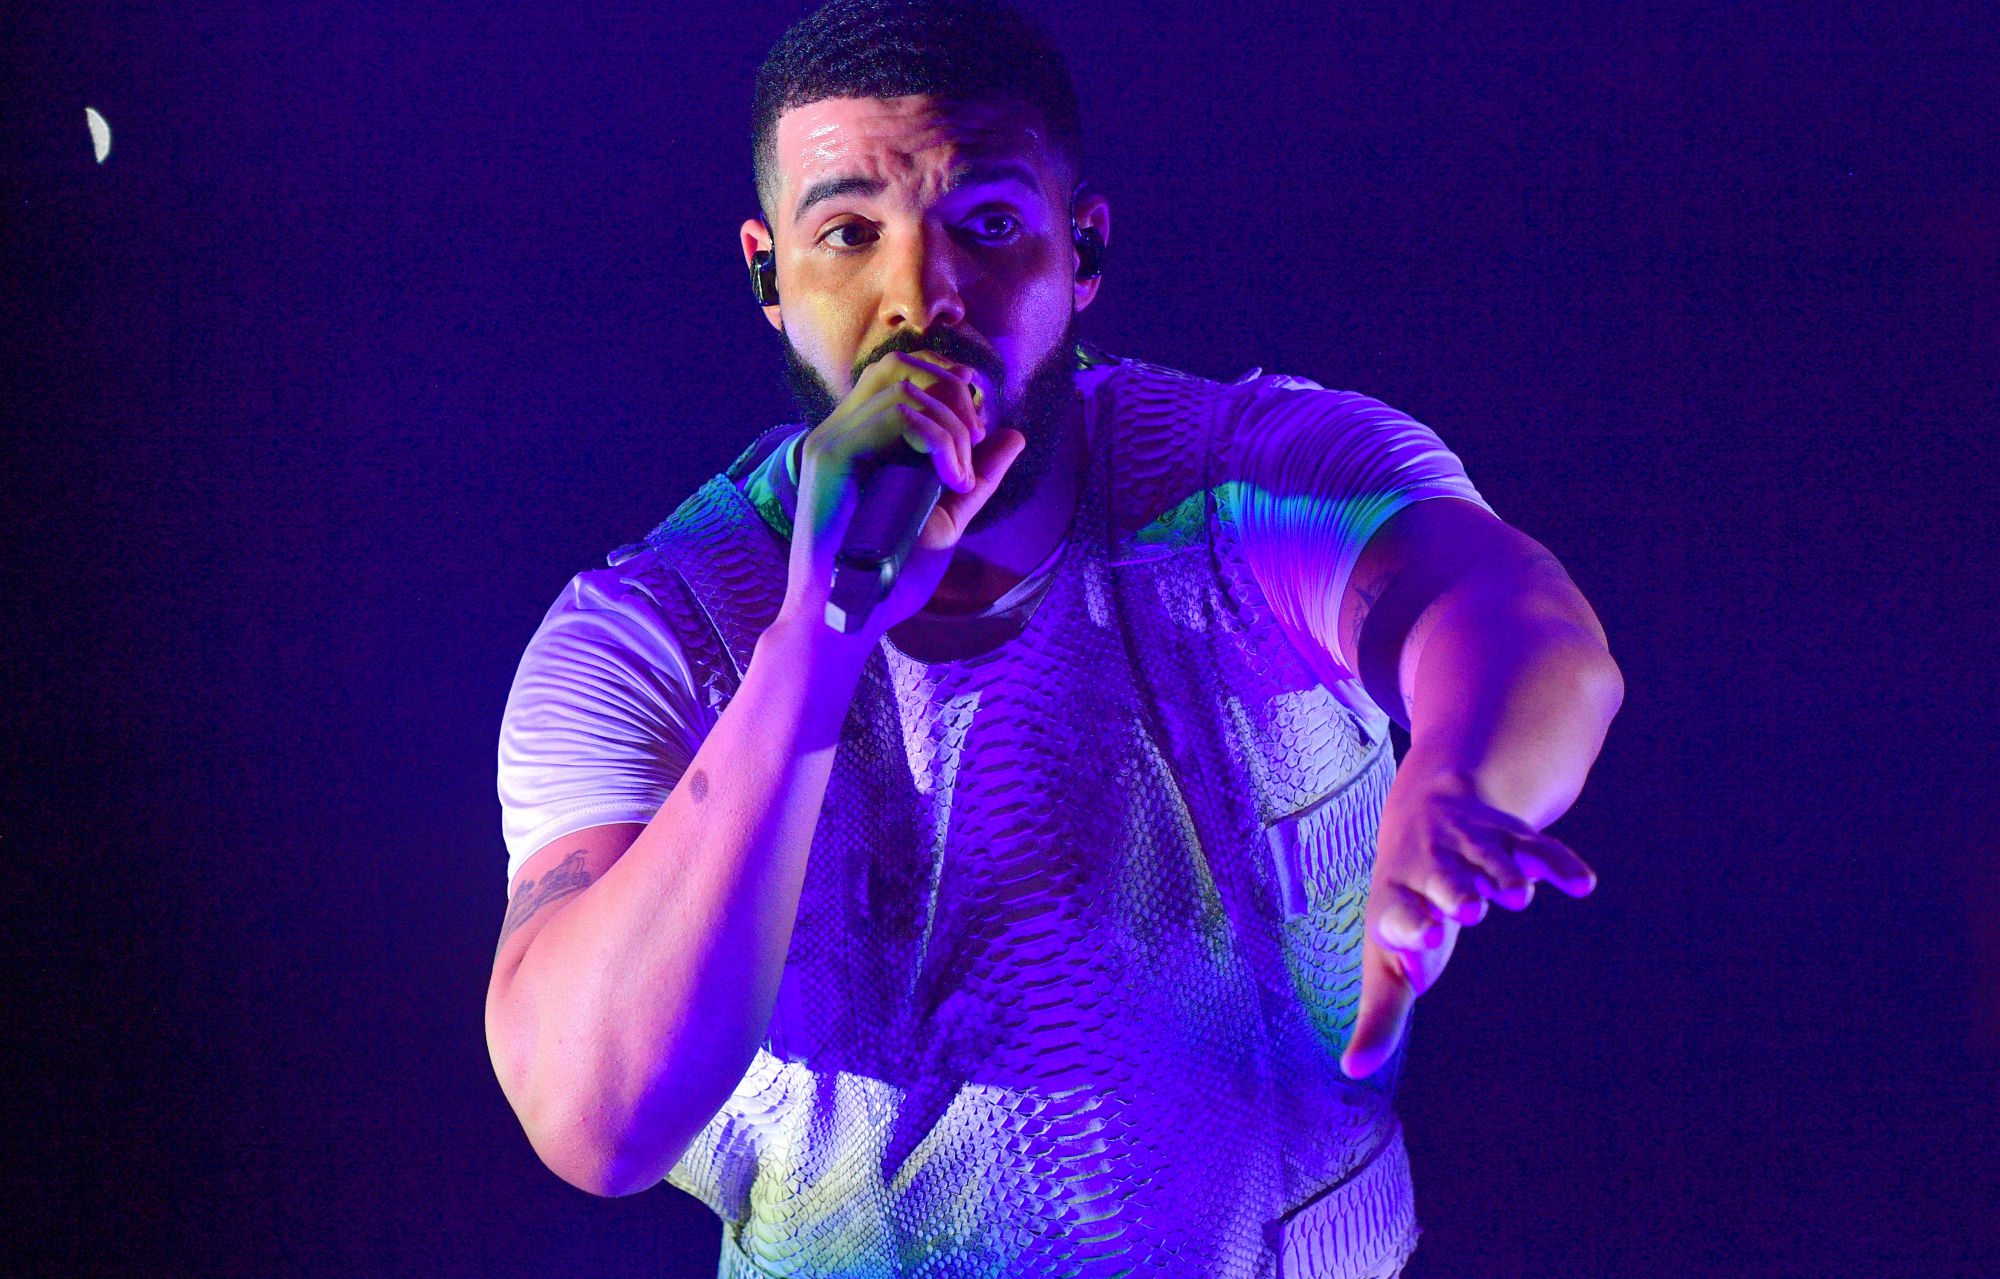 Drake is reportedly launching his own cannabis business after teasing a mysterious new project